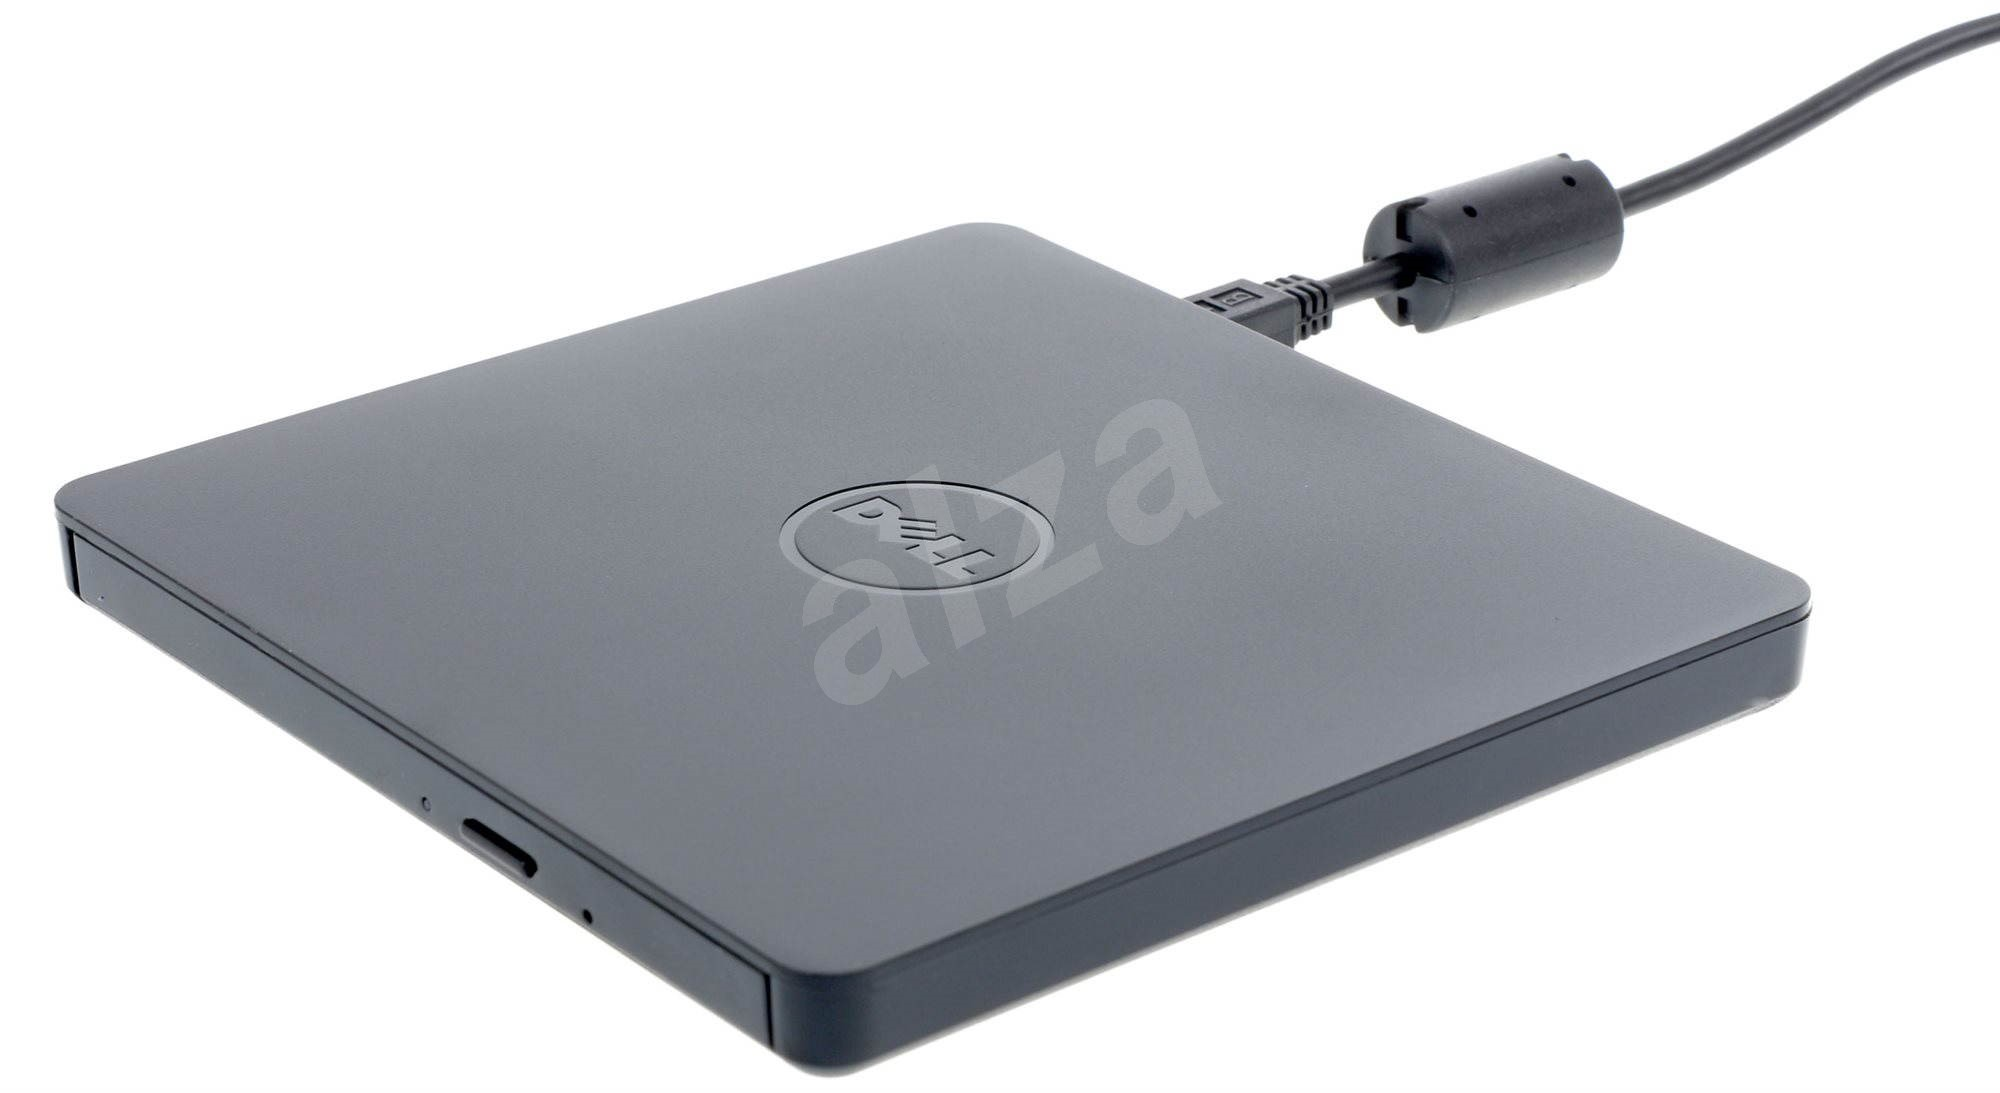 Dell Dvd Burning Software - Free downloads and reviews